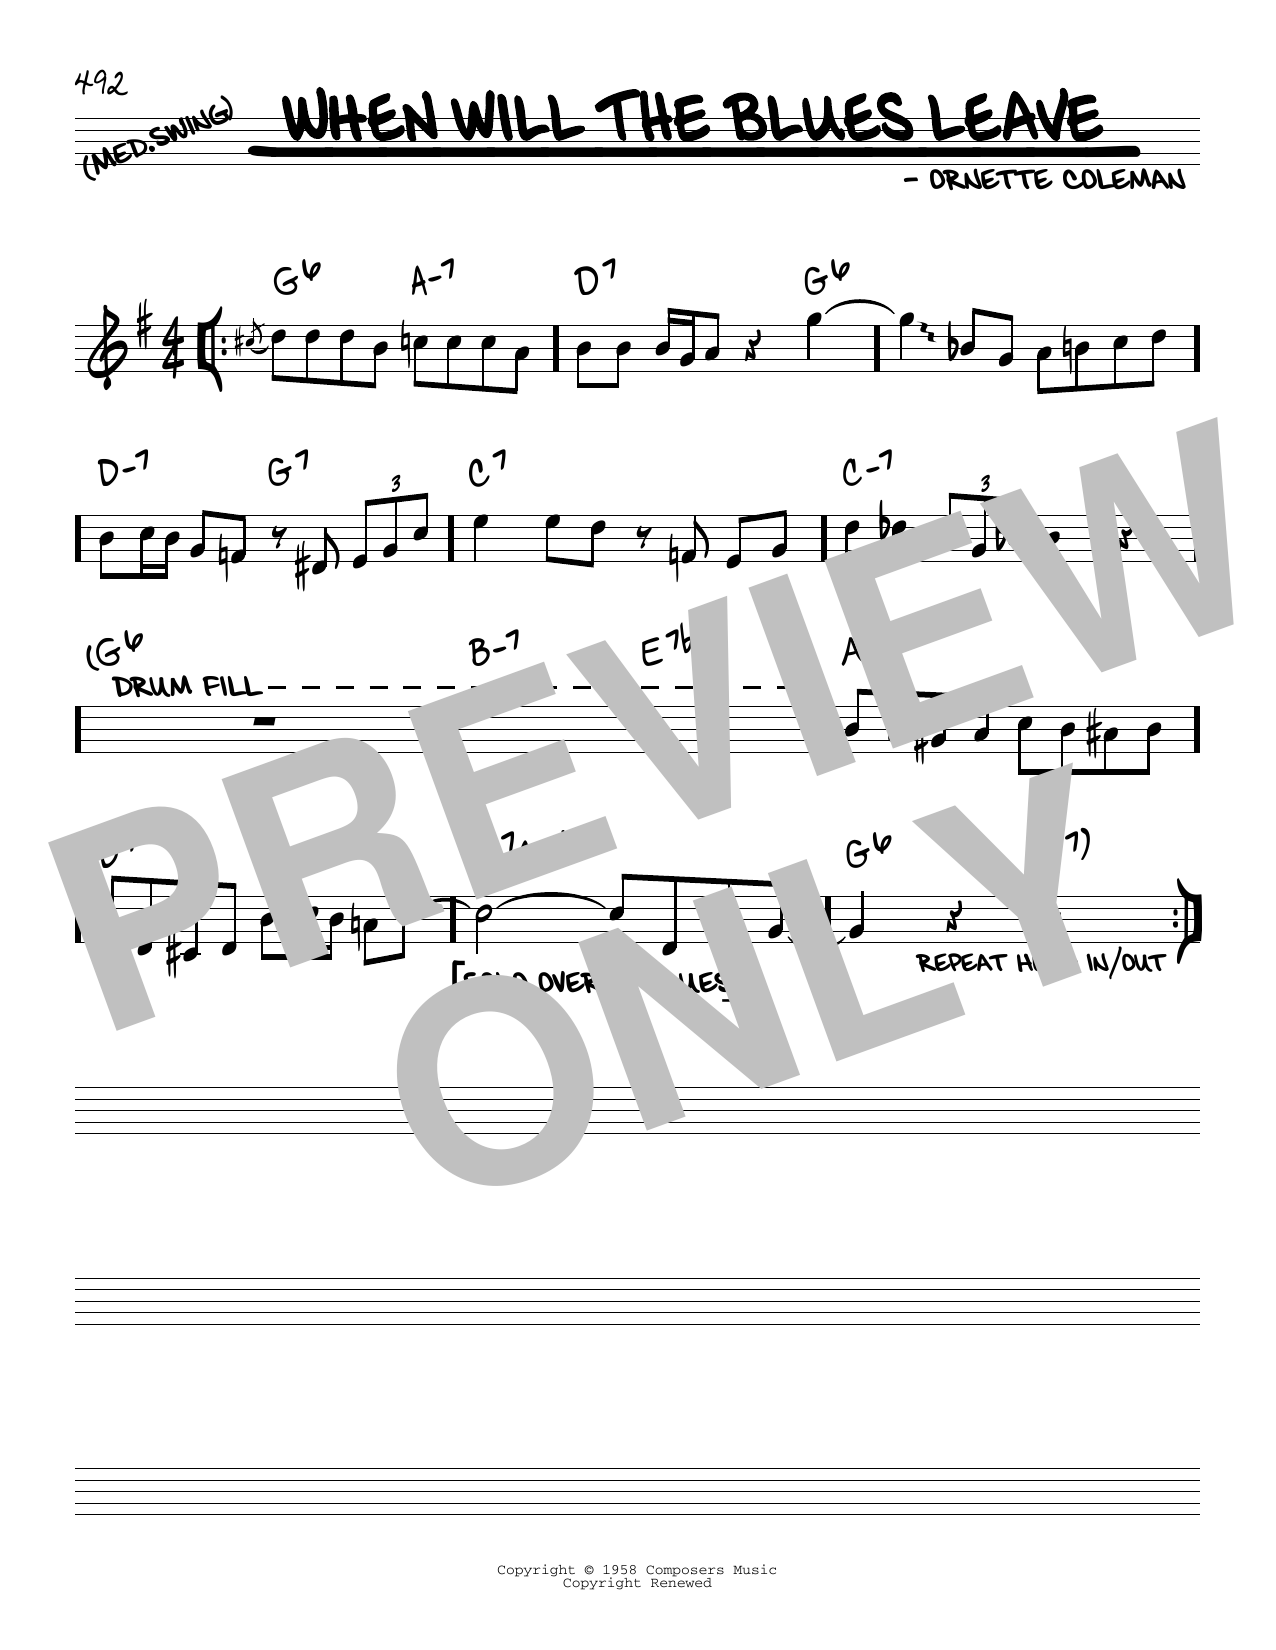 Ornette Coleman When Will The Blues Leave sheet music notes and chords. Download Printable PDF.